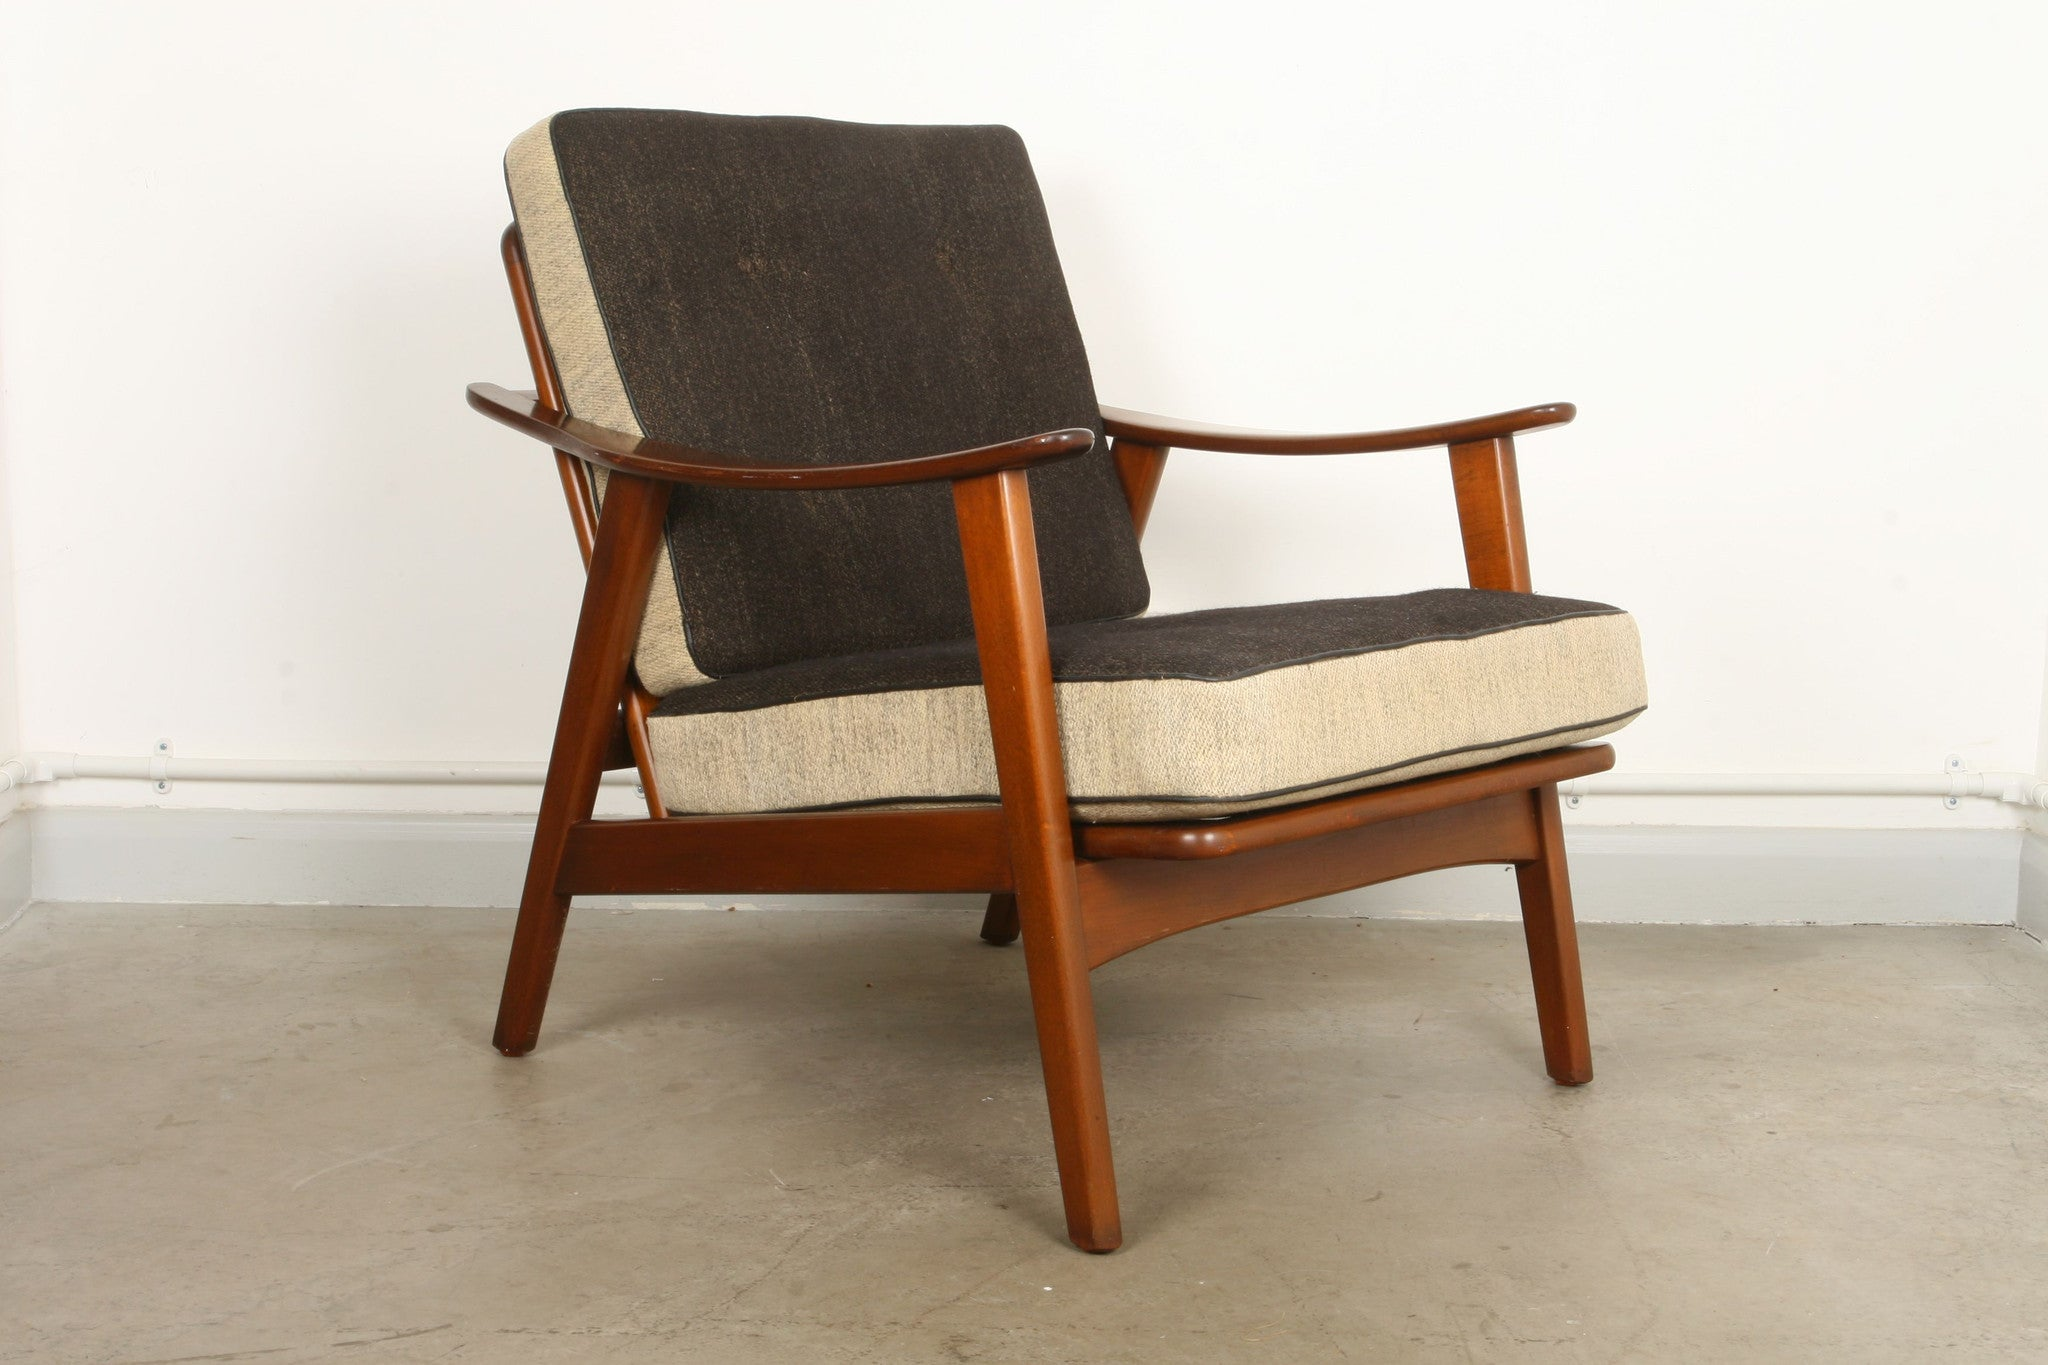 1950s low back lounger